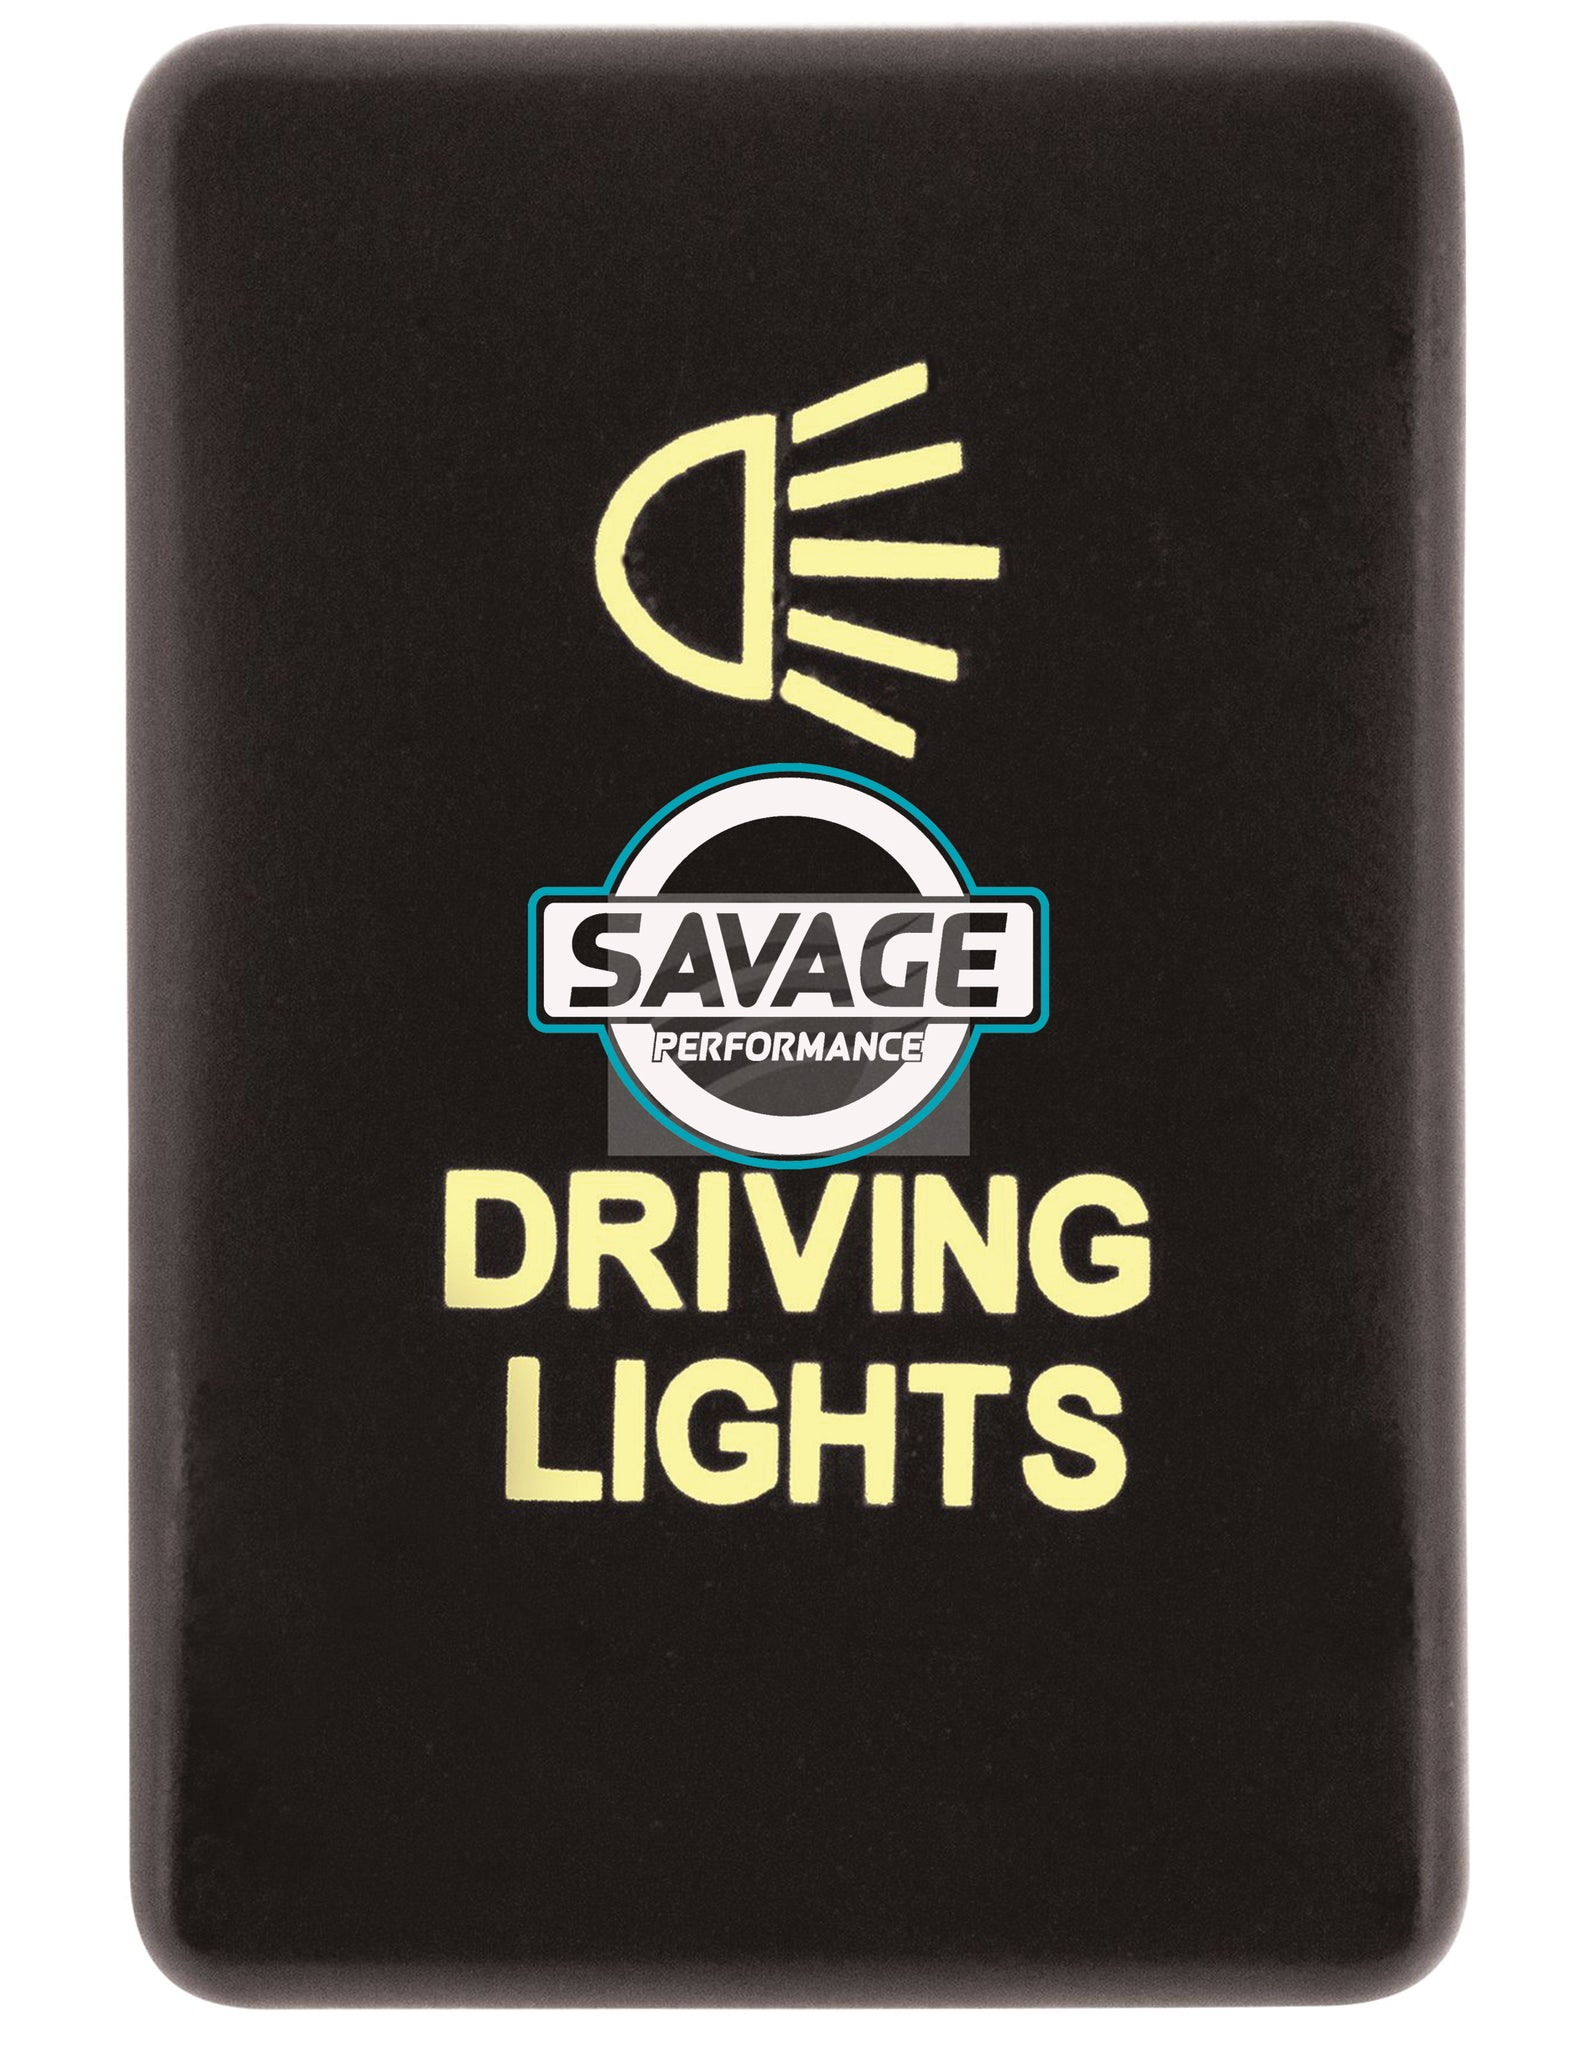 Jaylec - Driving Lights Switch - AMBER - Hilux GUN Series (2015 on)